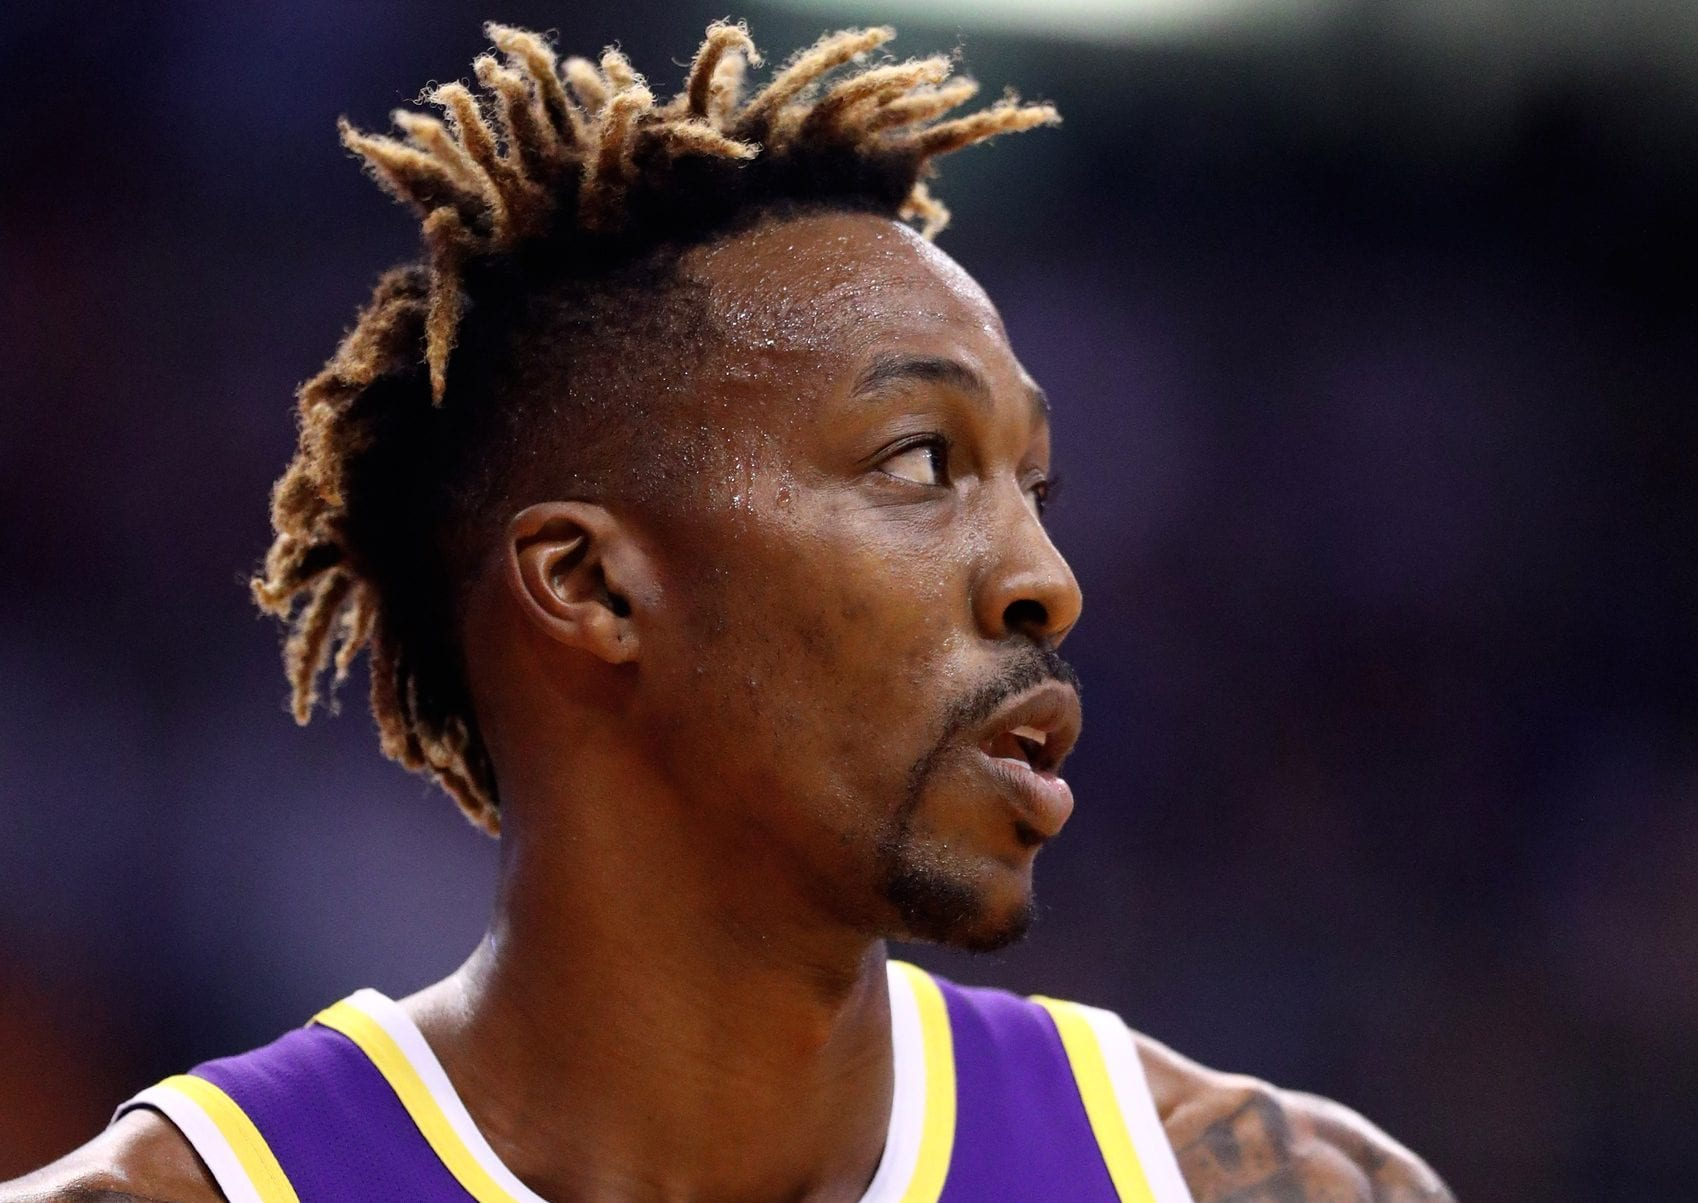 Dwight Howard: 'Stop Focusing On Lack of Mask, Ignoring Real Issue'